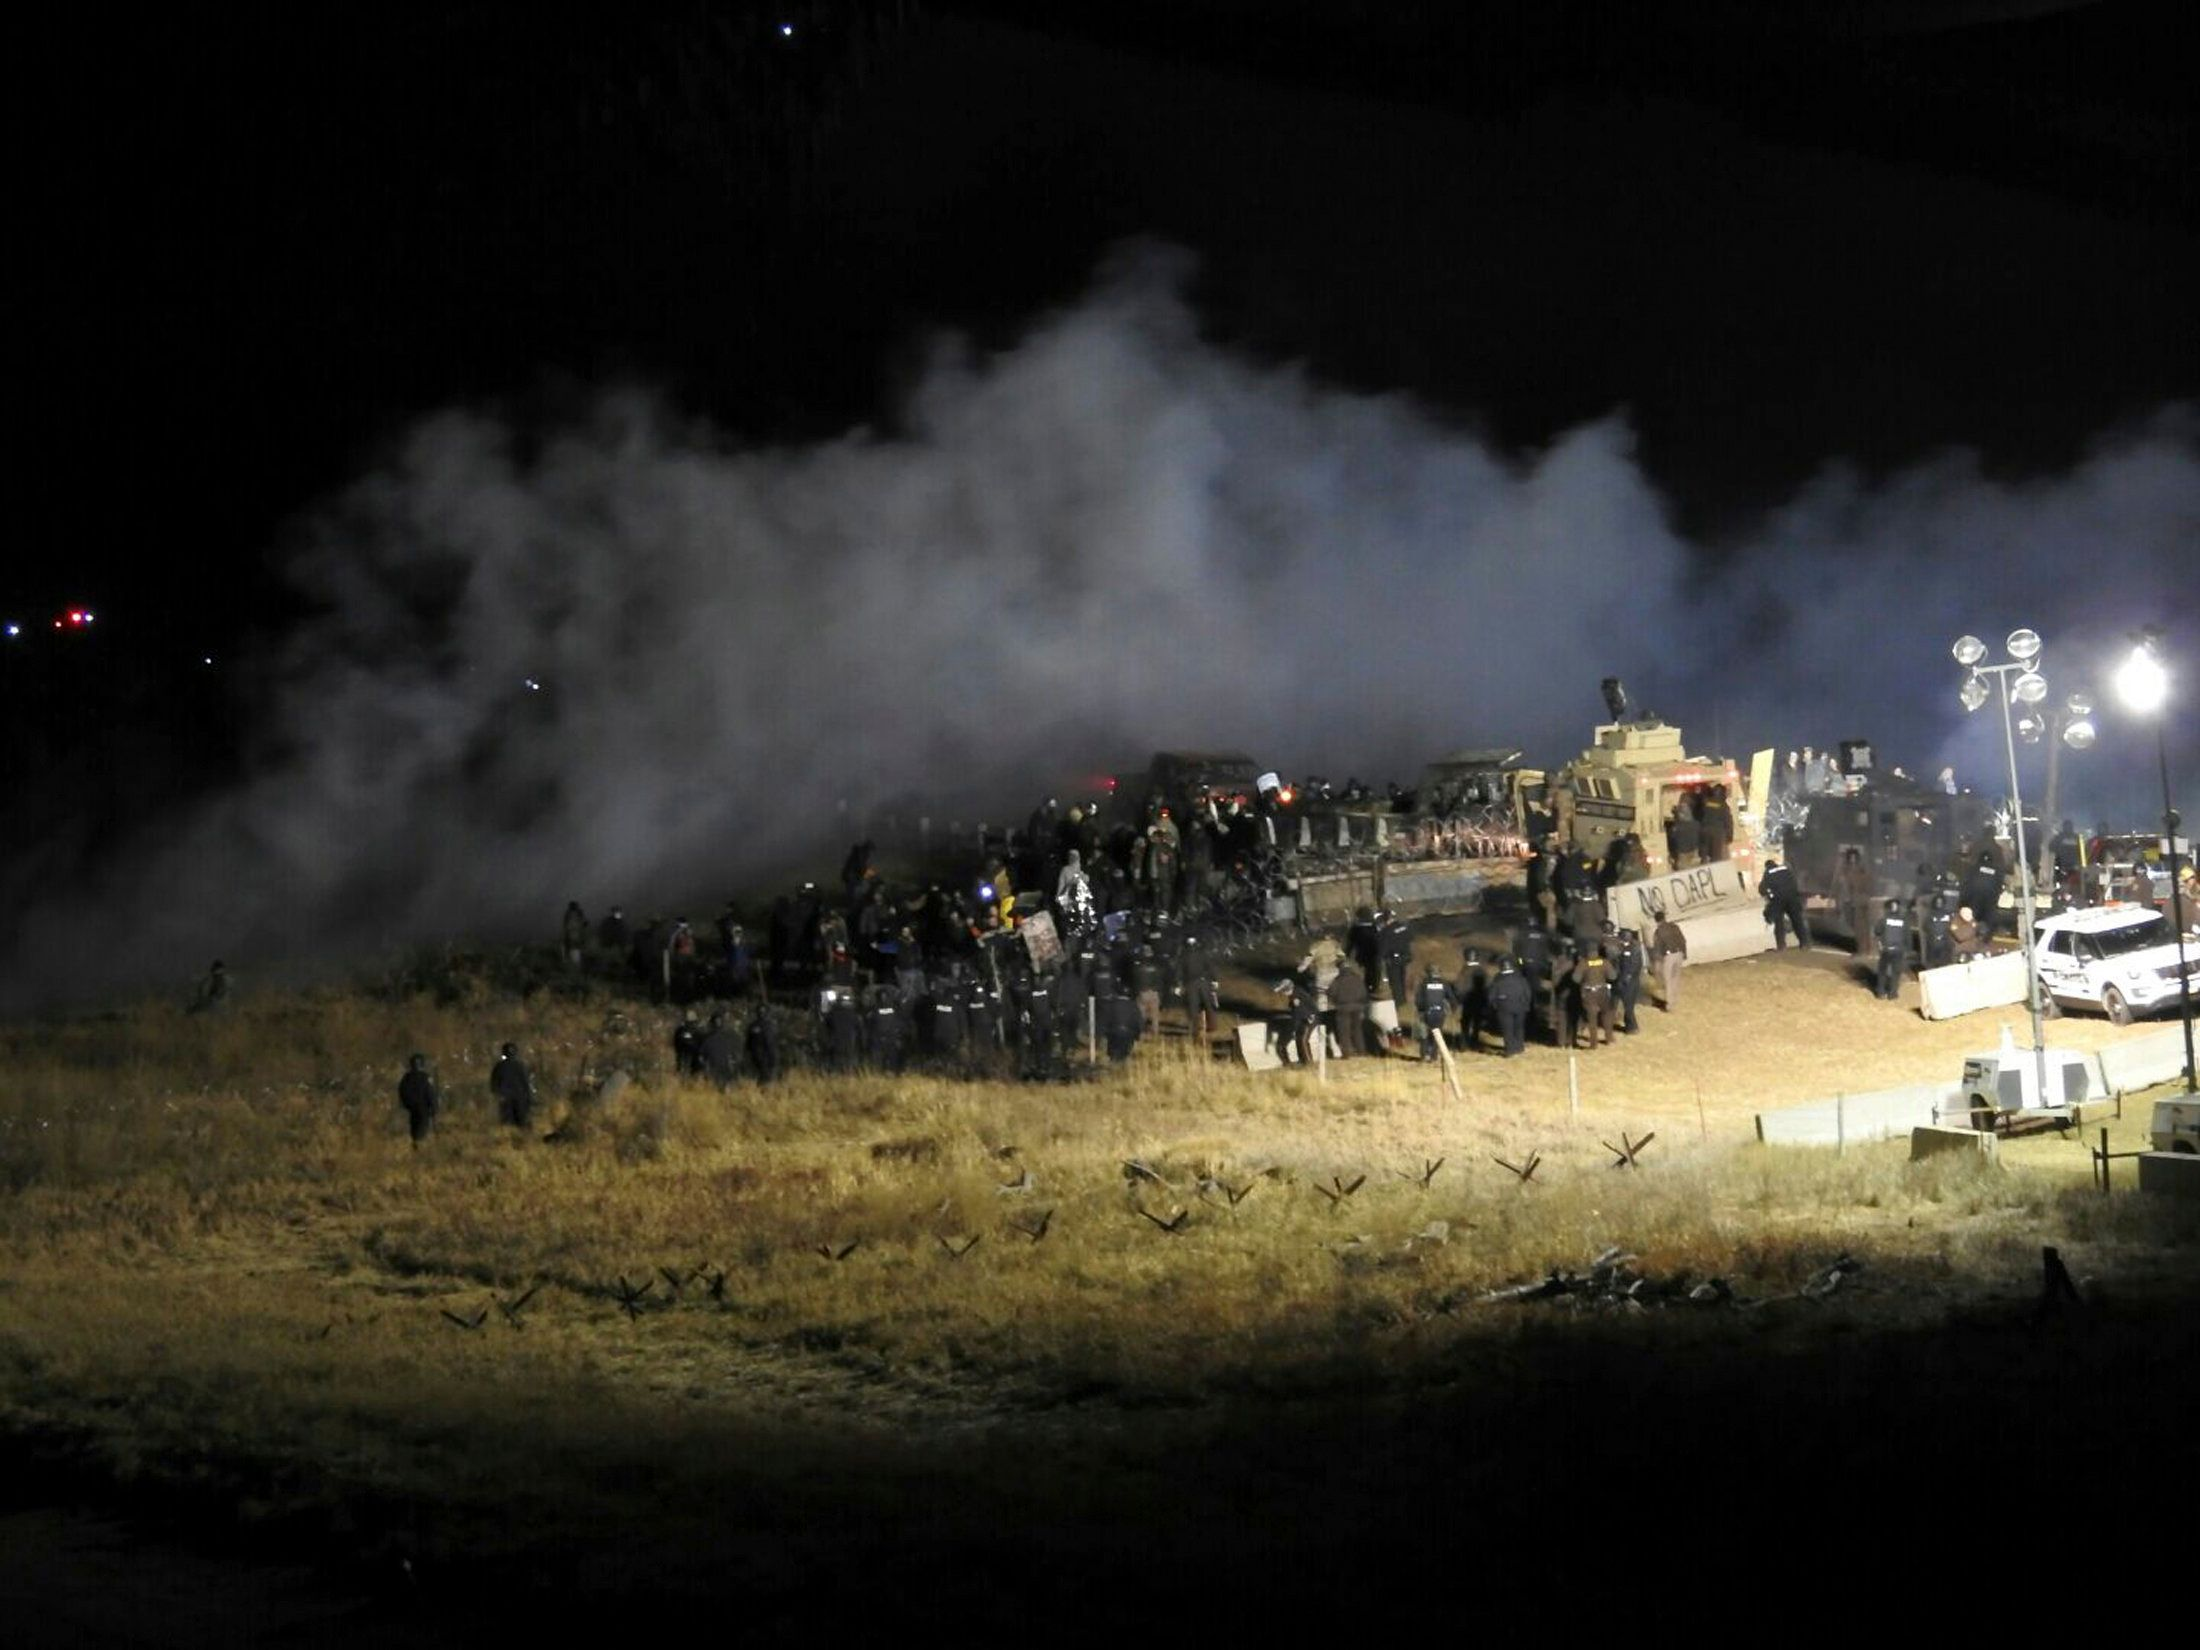 Law enforcement officers surrounded demonstrators protesting the Dakota Access pipeline in North Dakota on Sunday night.